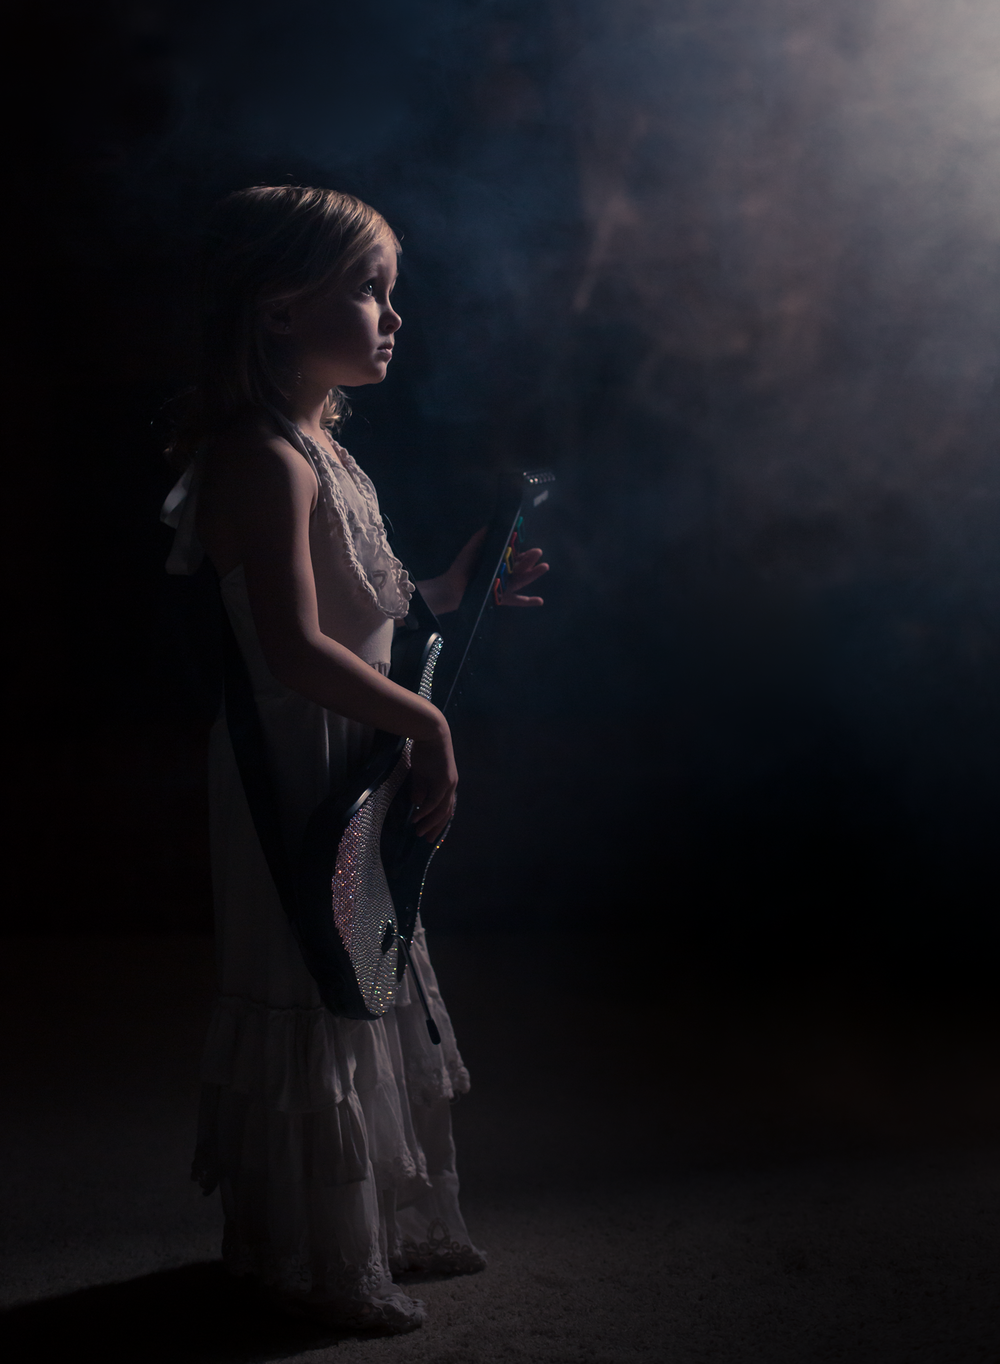 01 guitar hero fog machine westcott ice light rock and roll kate luber photography lifestyle photography edmond ok photographer oklahoma city (3).png